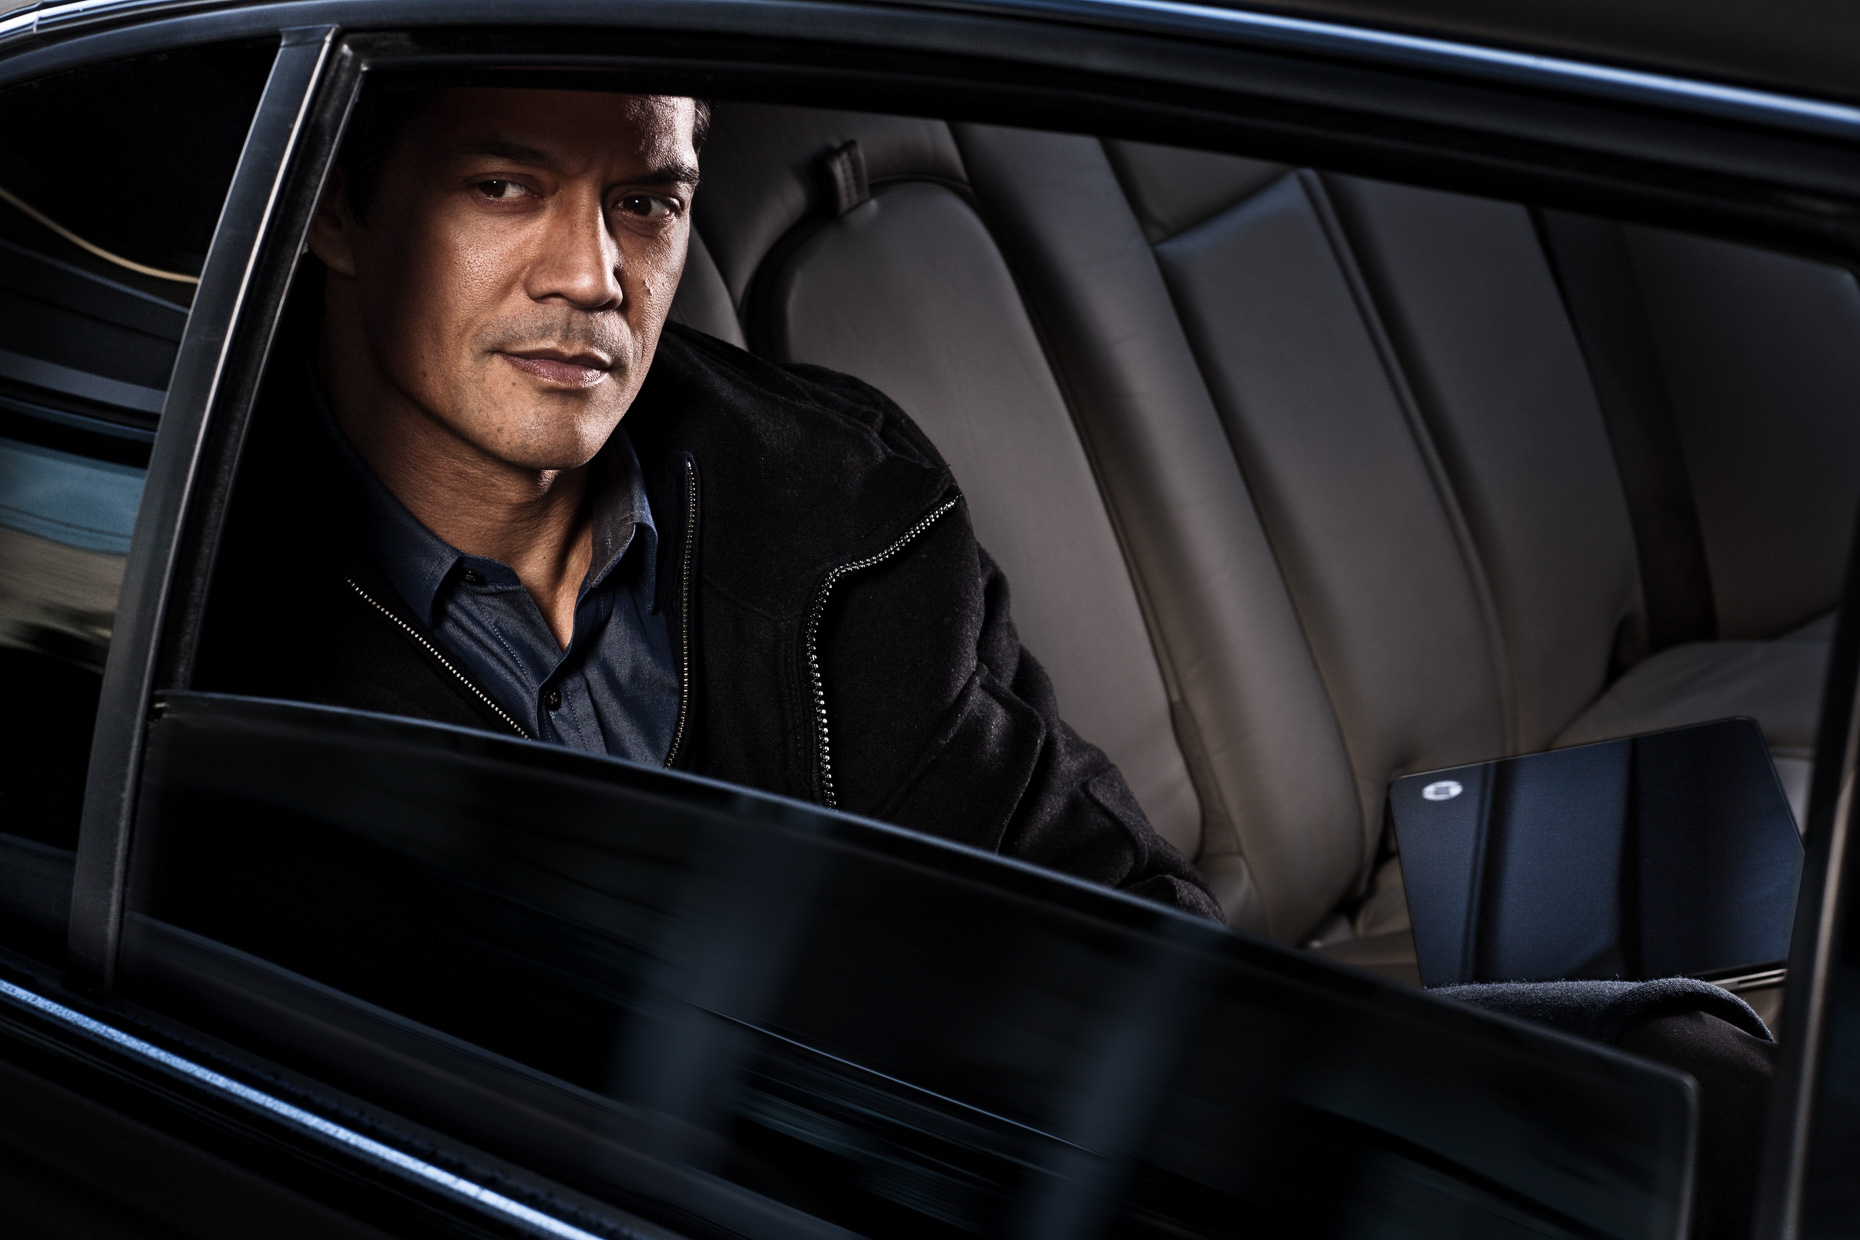 Portland model Veli Duvauchelle for HP Spectre laptop campaign in luxury Towne car by Andy Batt.